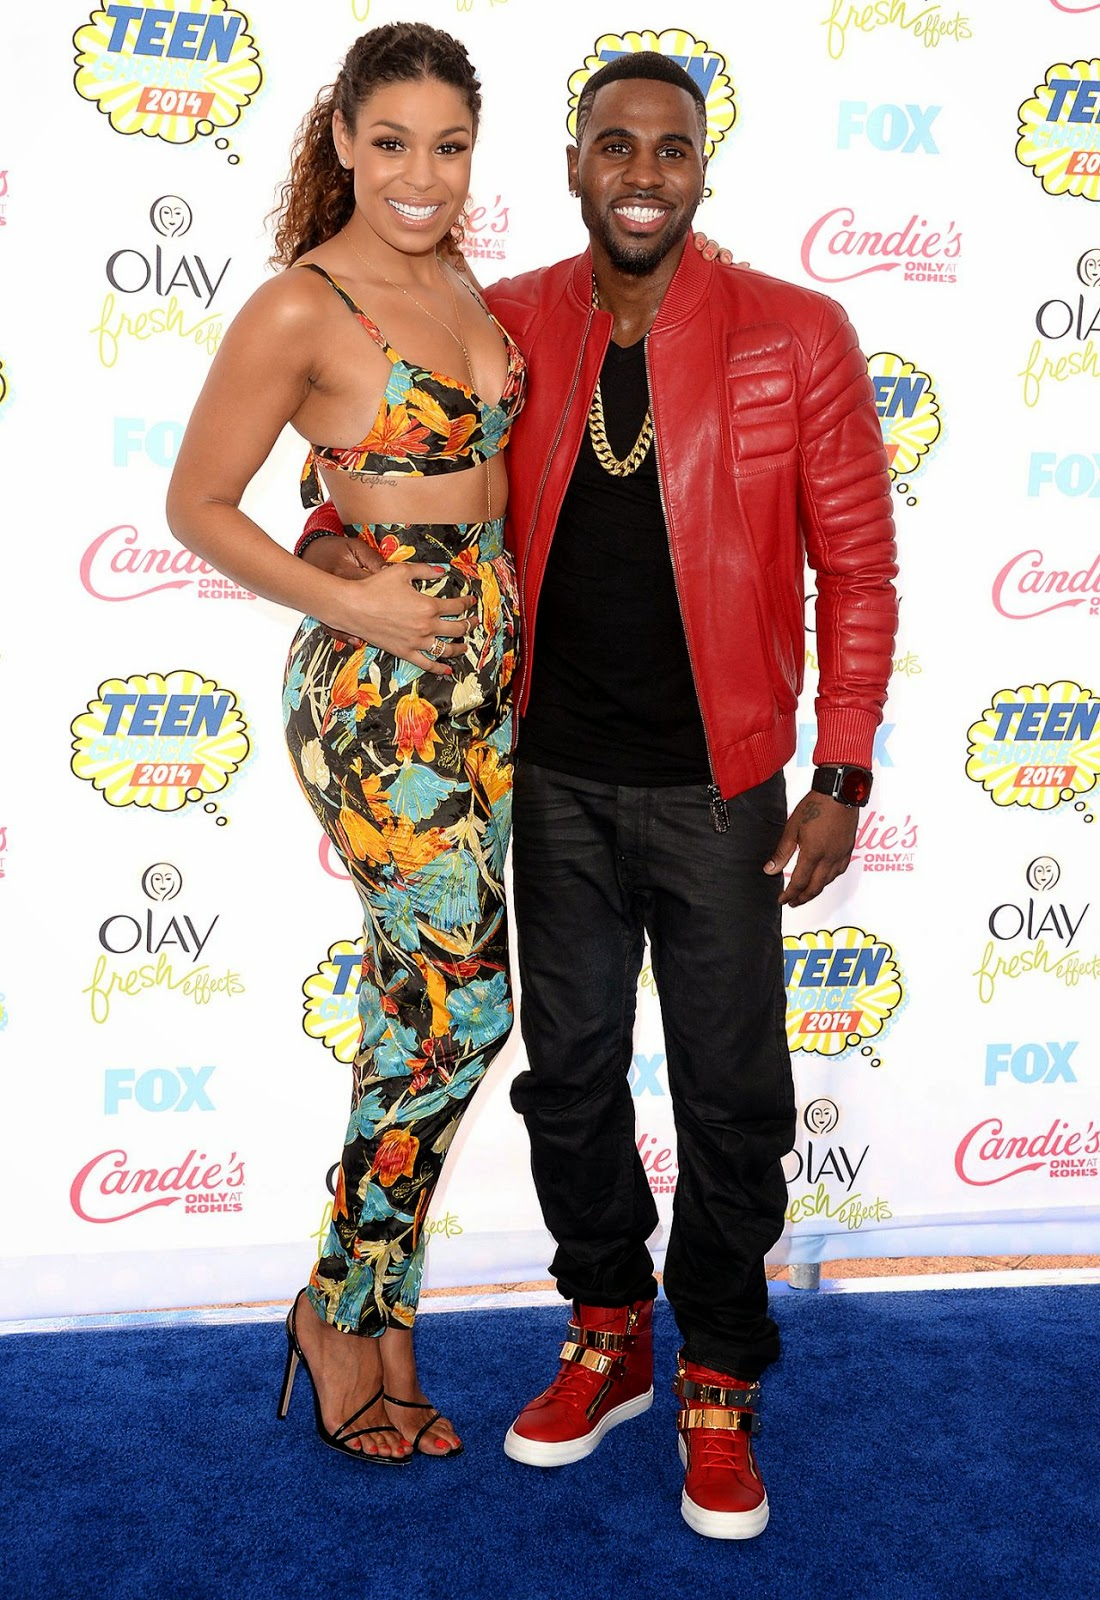 Jordin Sparks in a floral printed bralet and trousers at the 2014 Teen Choice Awards